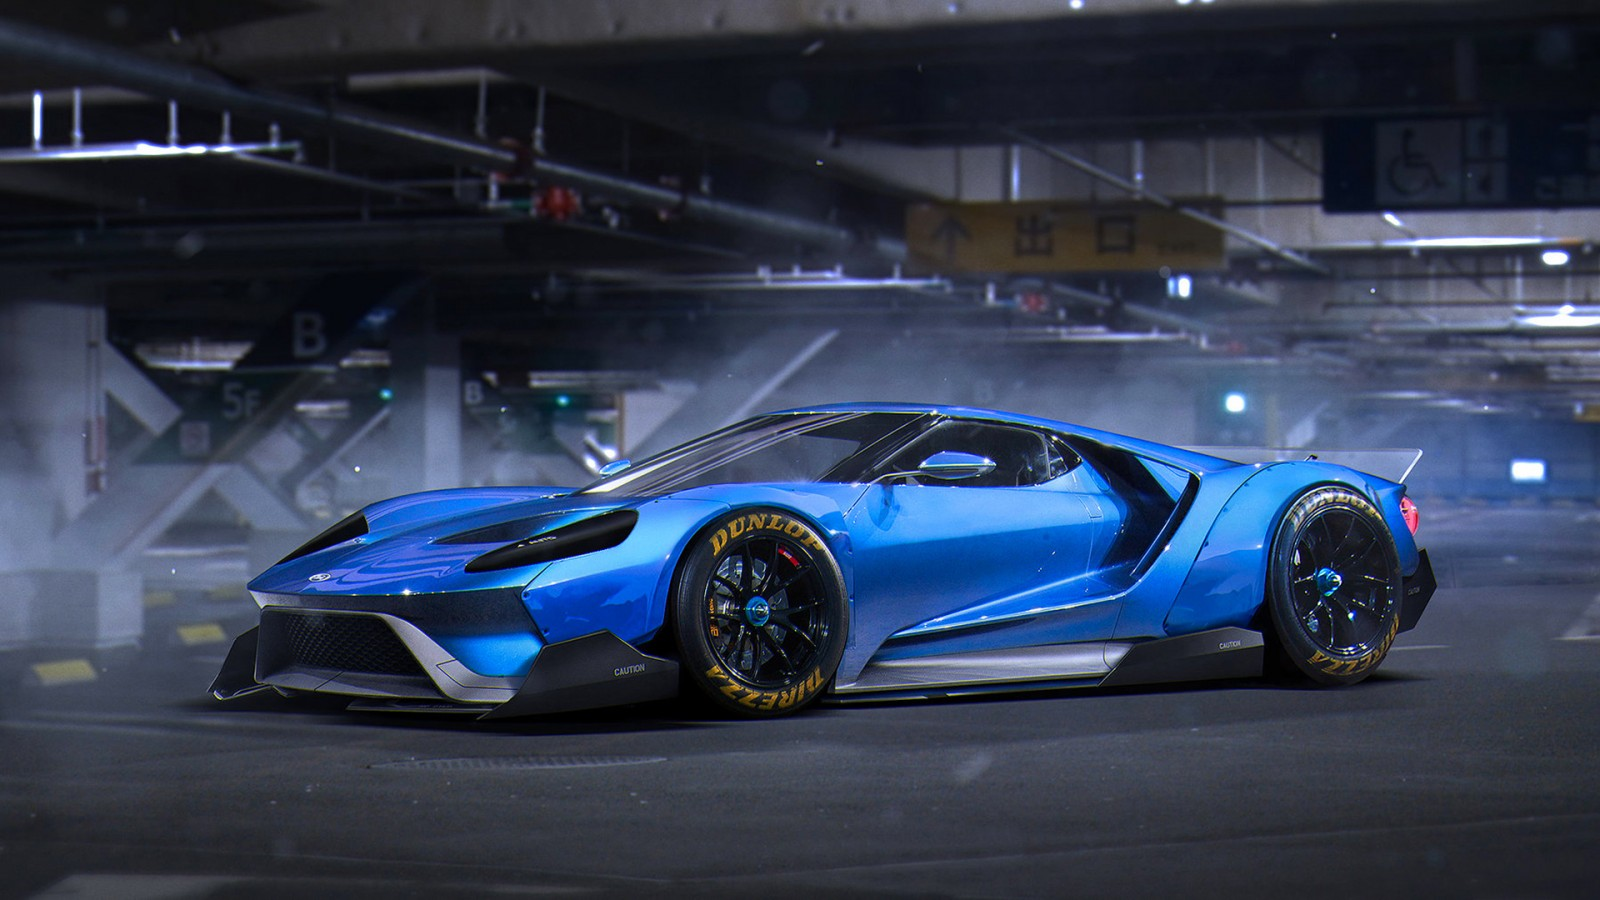 Ford Gt Supercars American Cars 2017 4k Uhd Widescreen: Ford GT 2015 Wallpaper